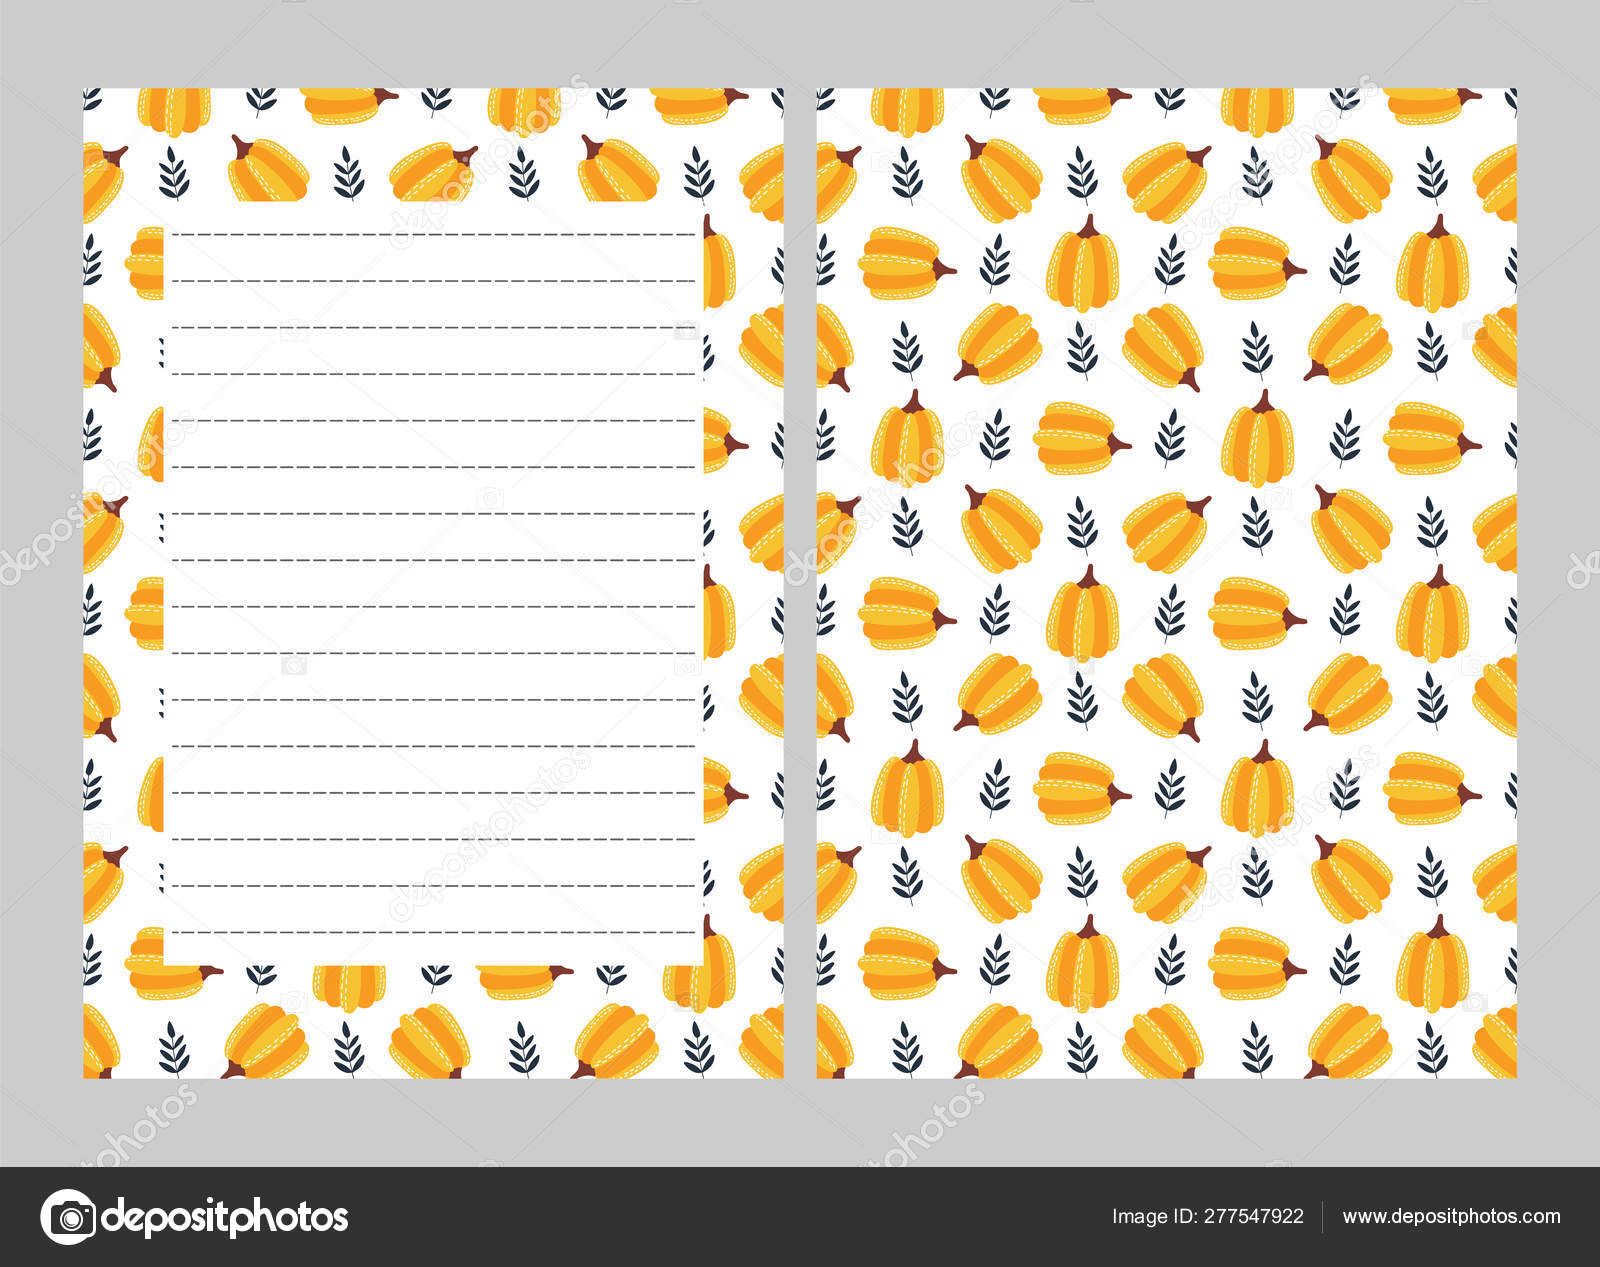 graphic regarding Printable Note Papers referred to as Organizer Notice Papers Young children Printable Webpages Inventory